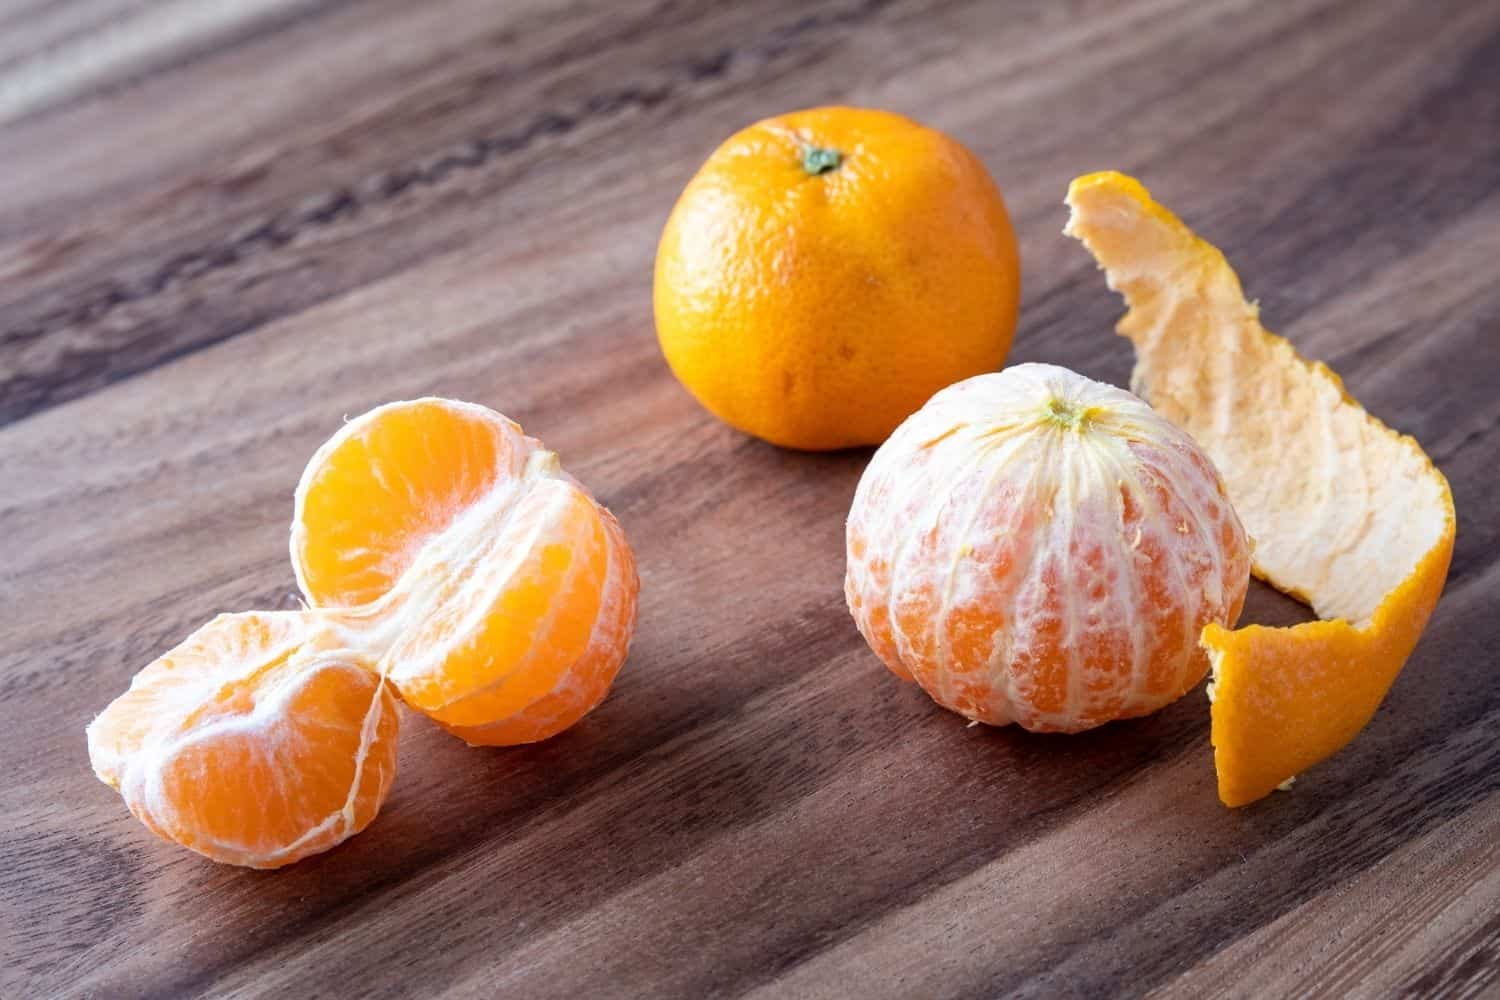 How to de-pith and what does it mean to de-pith when cooking?